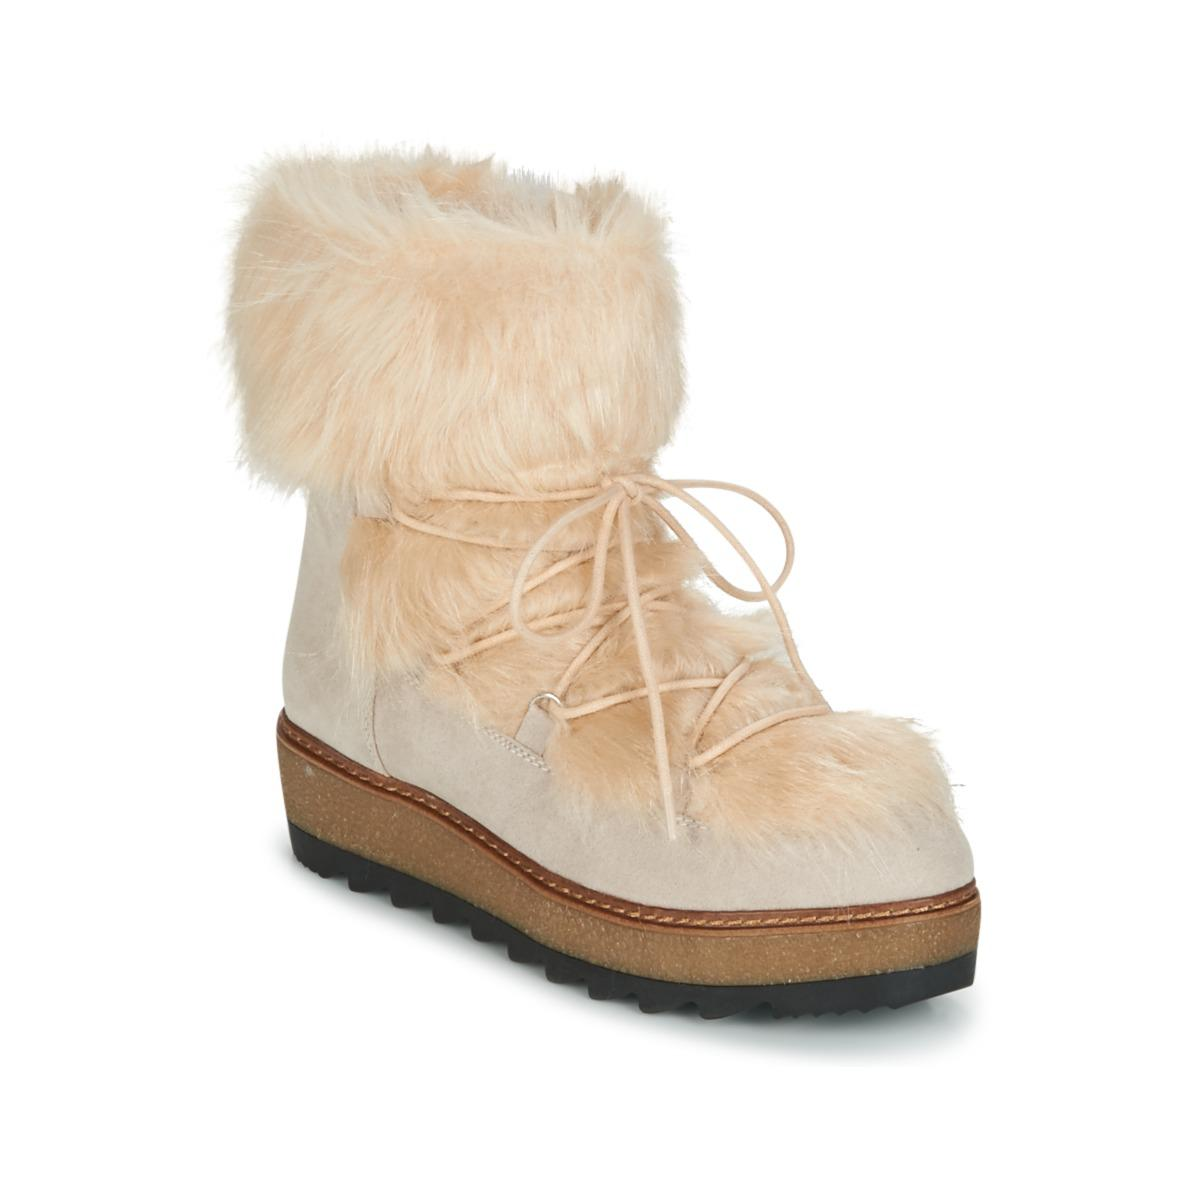 Geniue Stockist For Sale Buy Cheap Pictures Tamaris 112626329805 women's Snow boots in 8betKlY